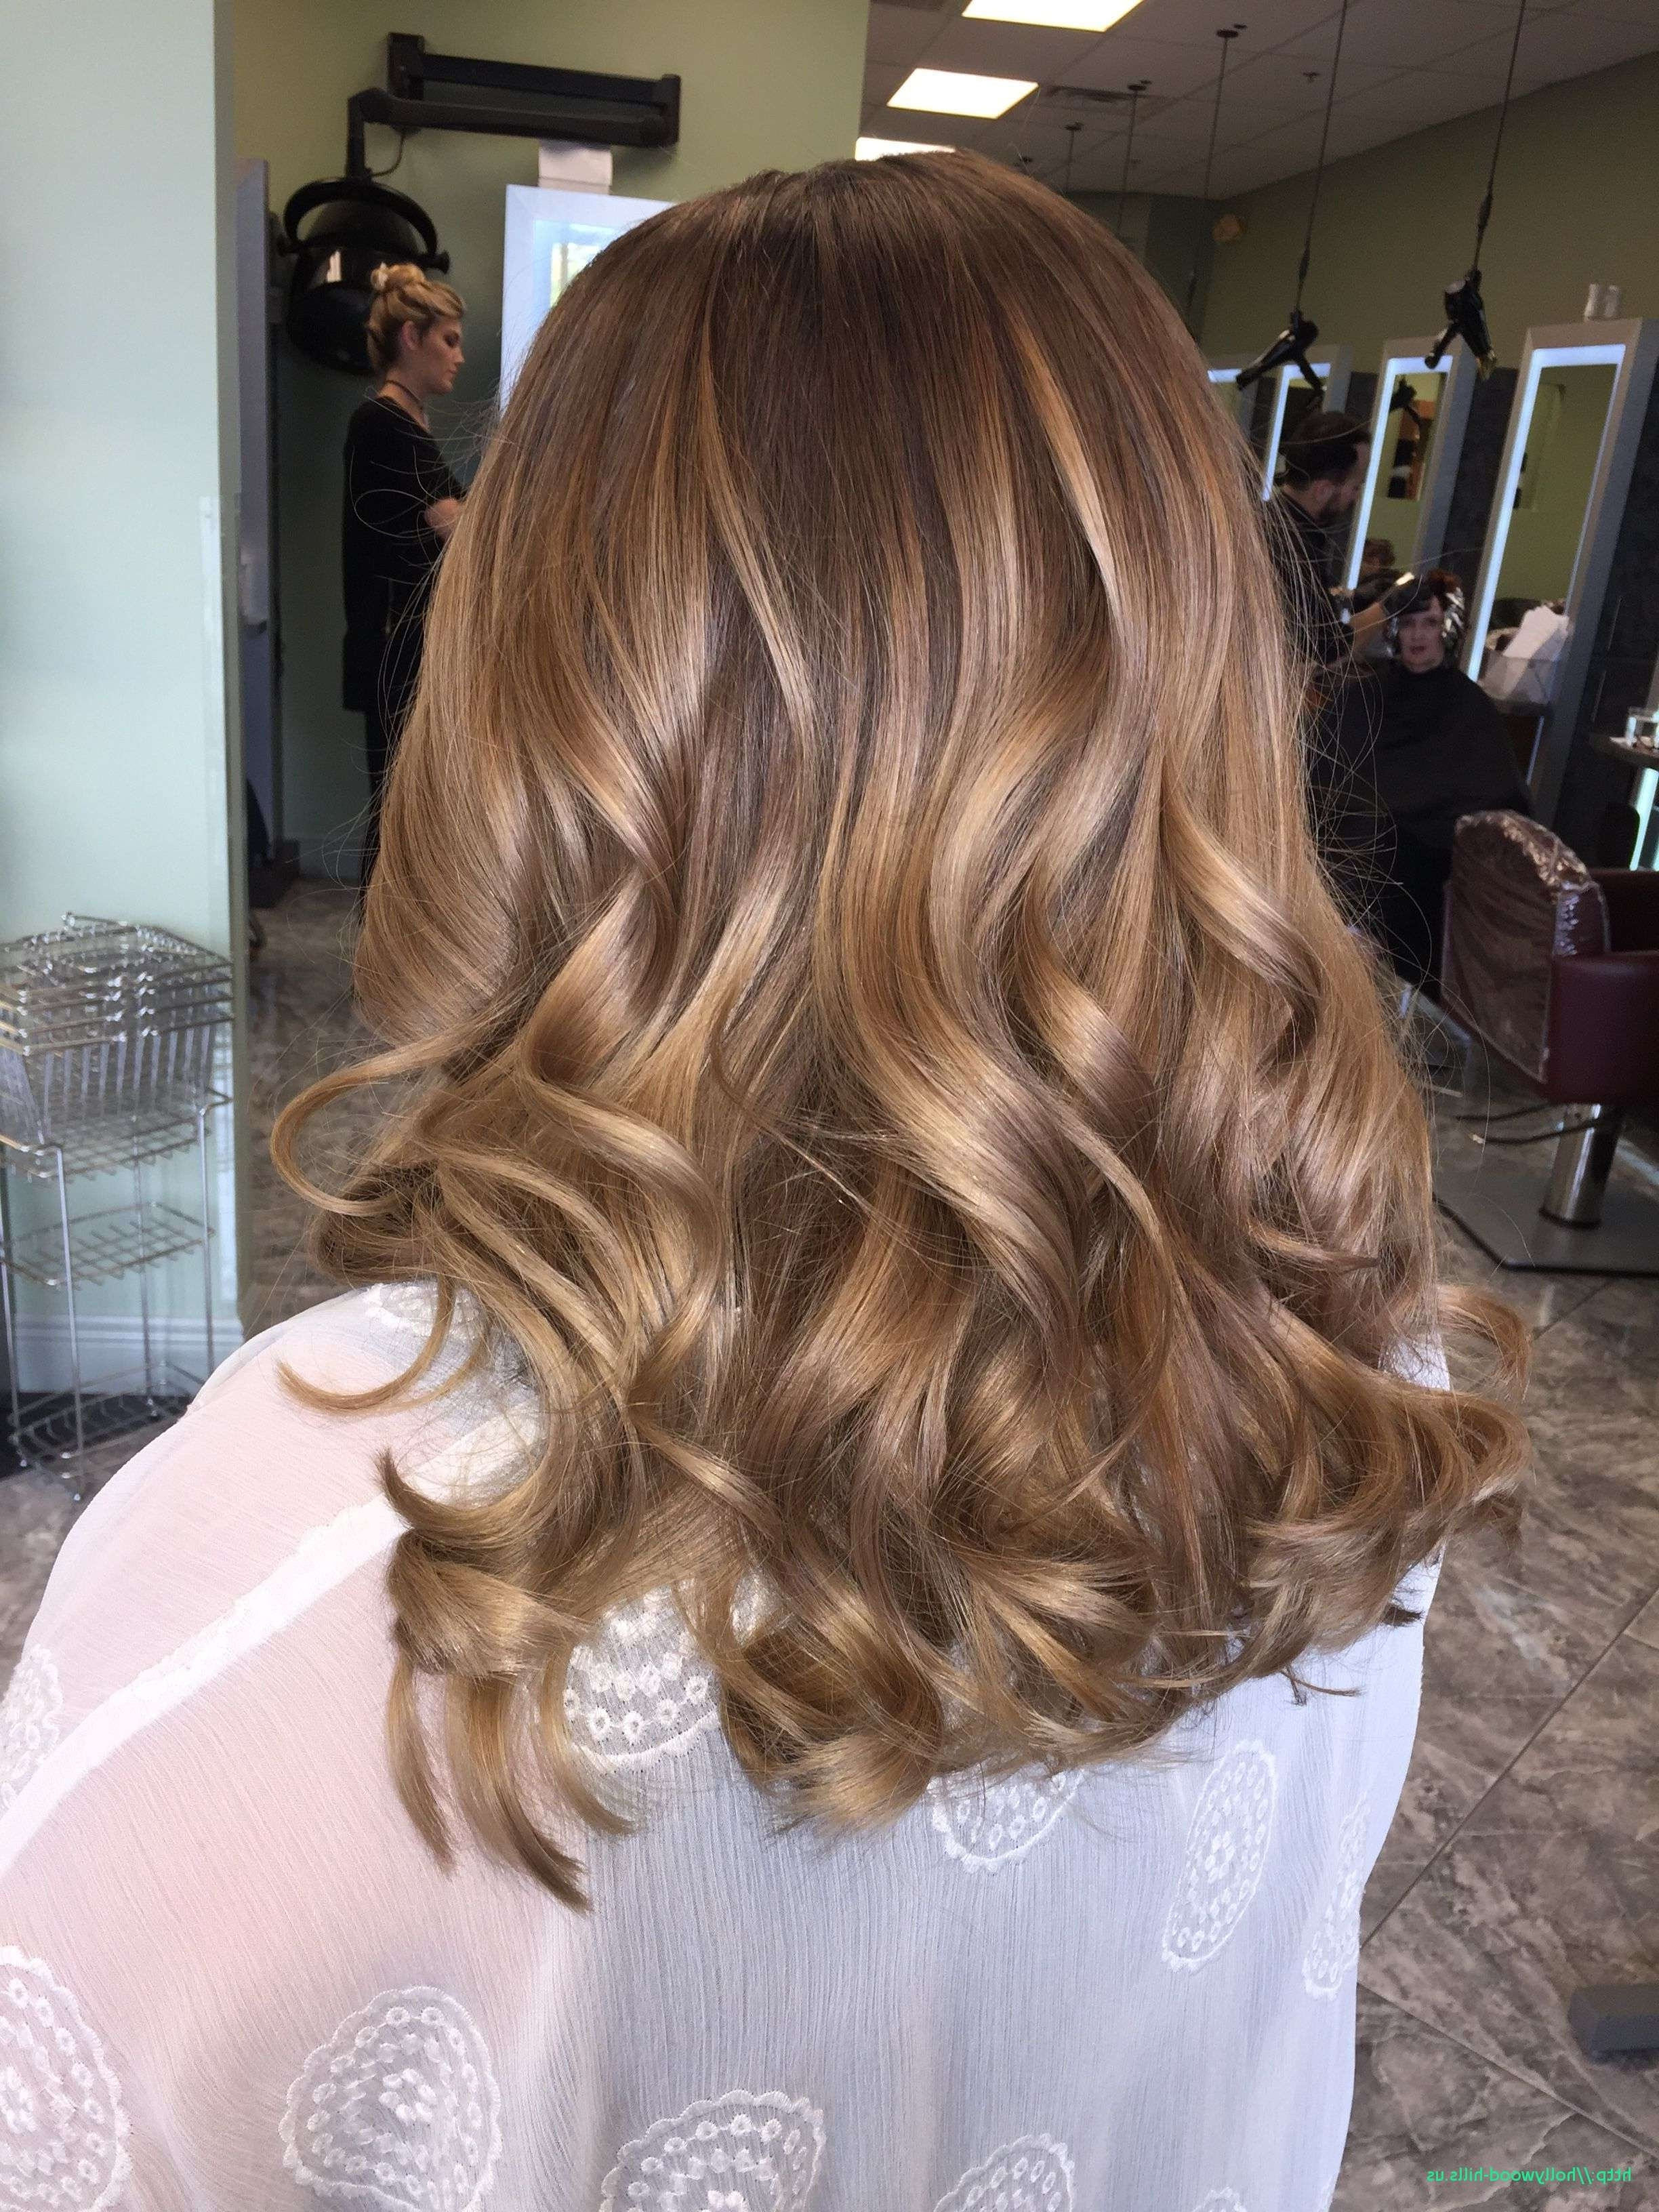 Most Recent Honey Blonde Hairstyles Throughout Streaked Bob Hairstyles Best Of Hairstyles Blonde And Brown Streaks (View 15 of 20)